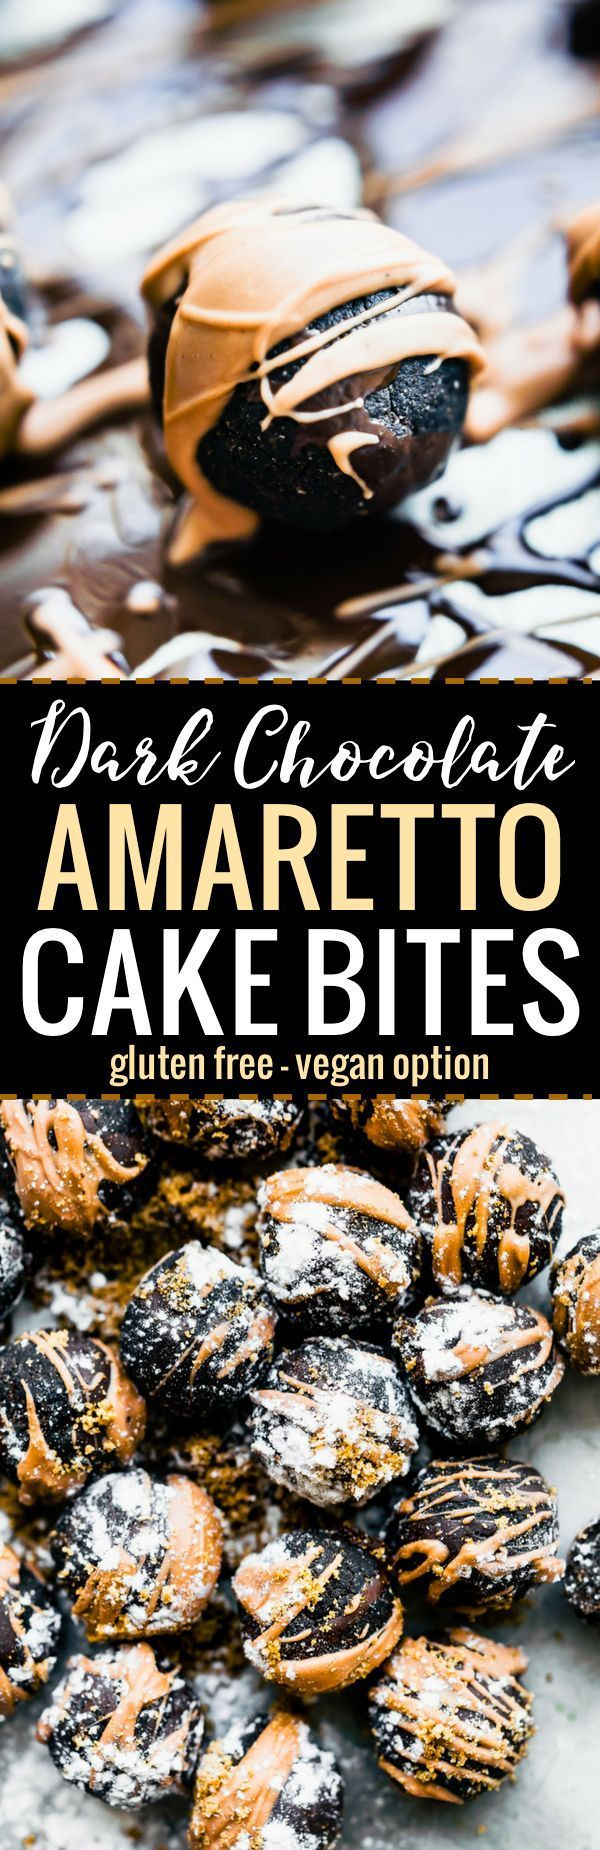 Dark Chocolate-Amaretto Cake Bites that require no baking and just a few simple ingredients. Perfect for the holidays and parties! This bite size dessert recipe is easy make non alcoholic, plus it�s vegan friendly